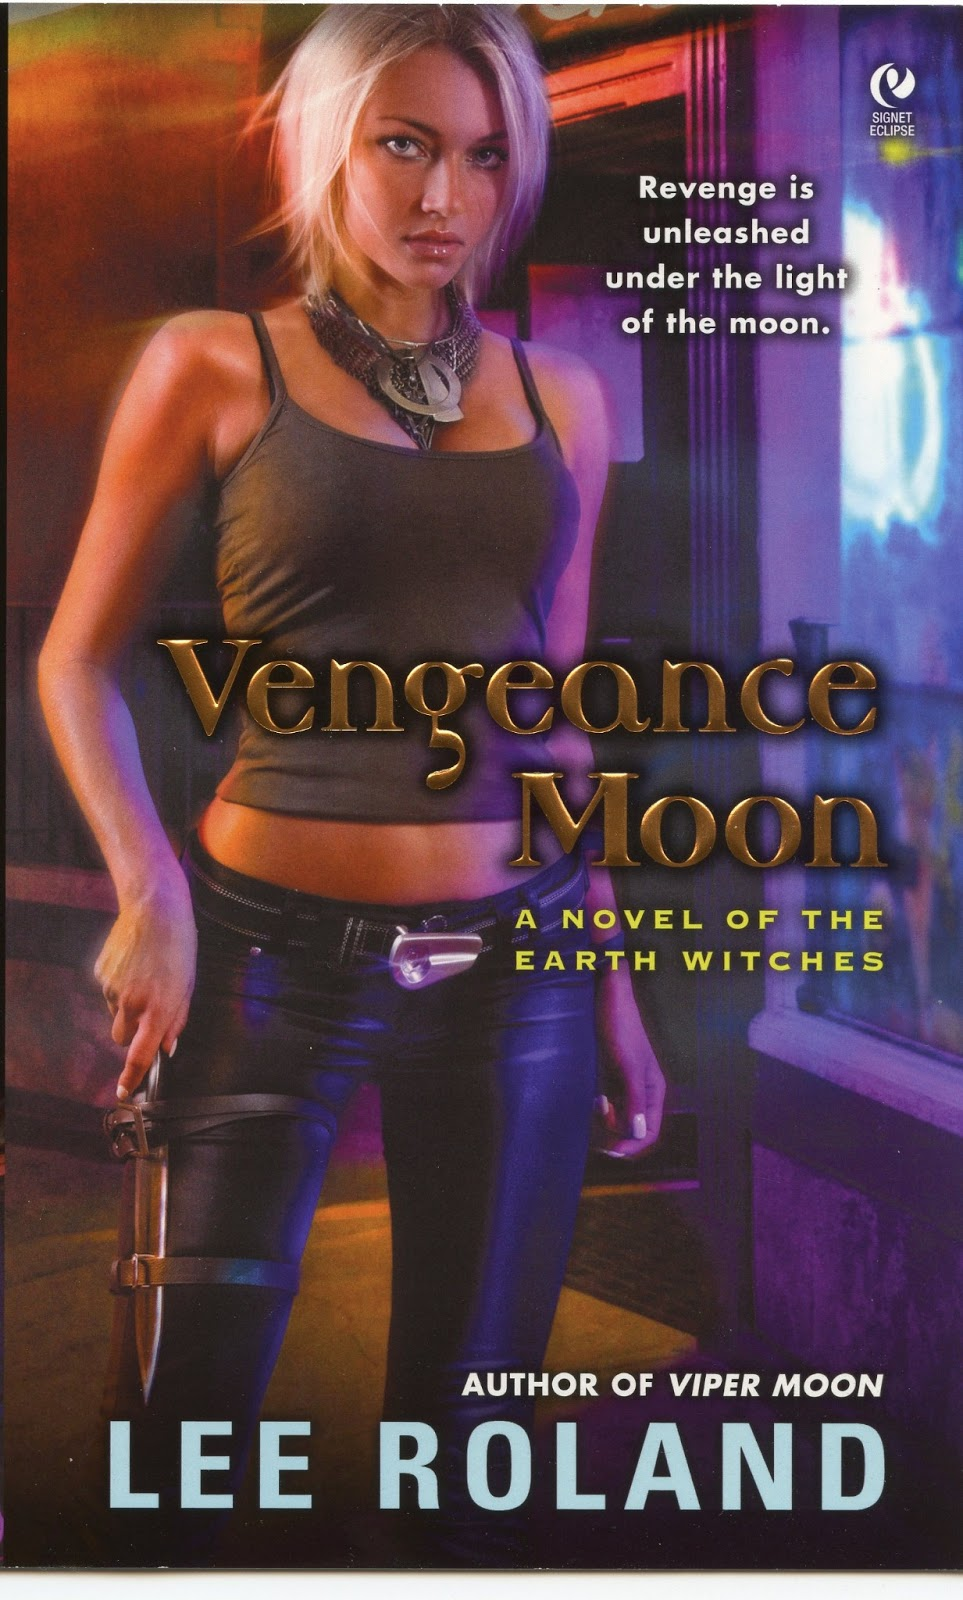 Vengeance Moon by Lee Roland (Earth Witches #2)